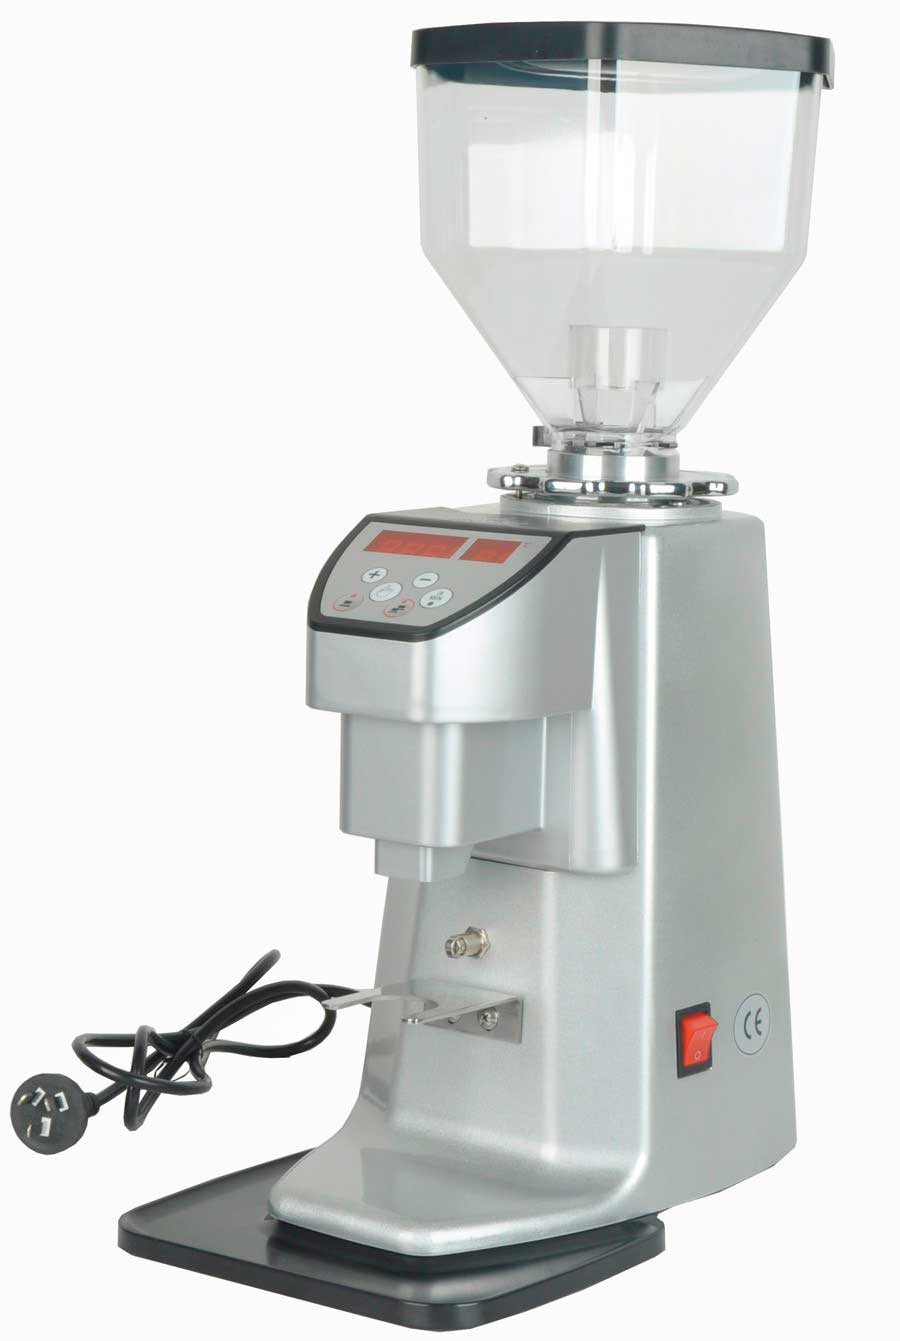 Commercial On Demand Coffee Grinder Netropolitan